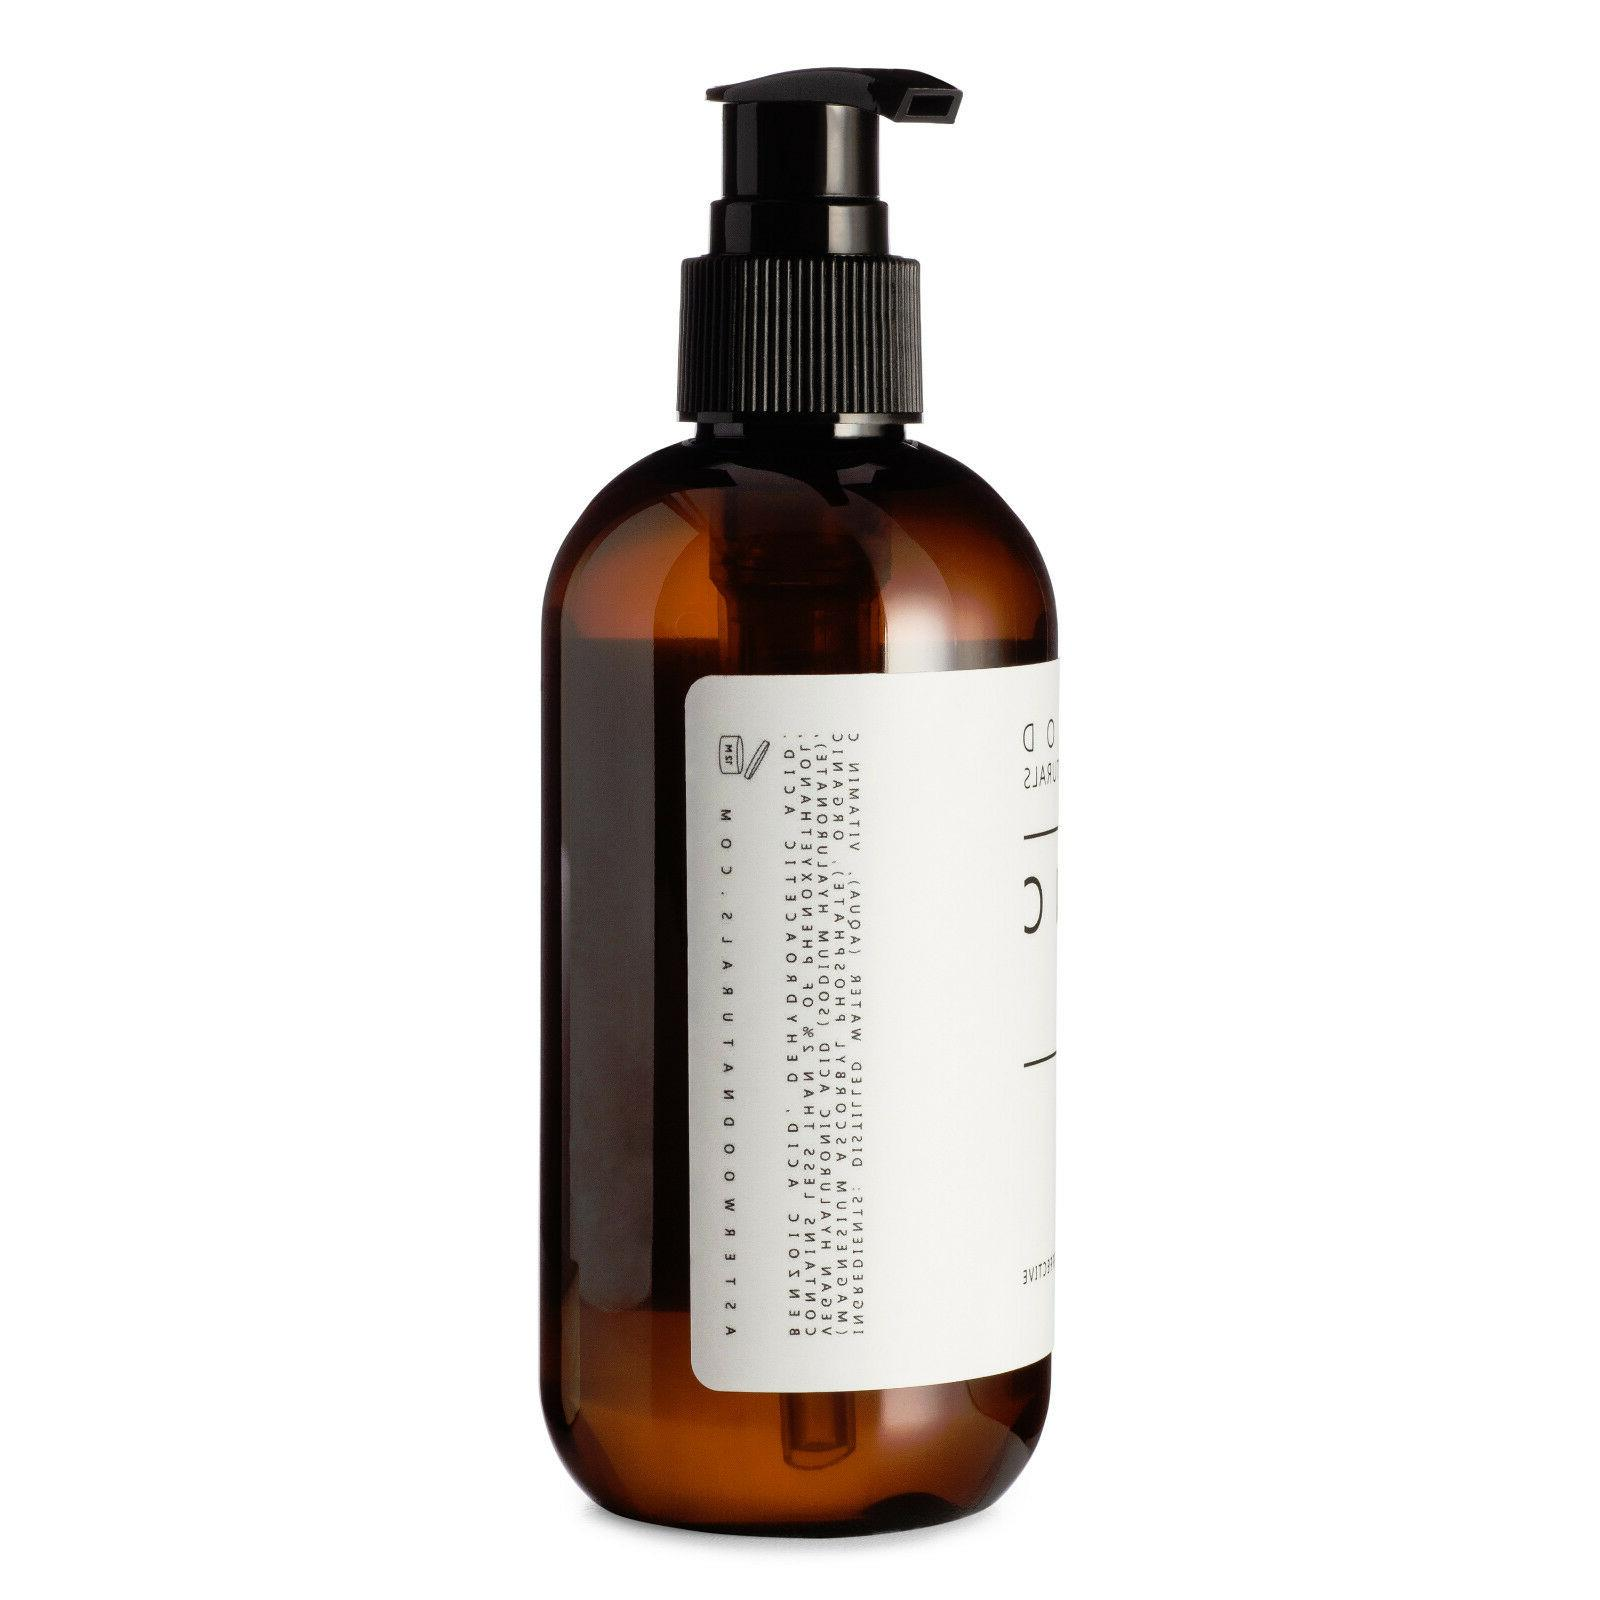 Vitamin MAP Serum w/ For Face Asterwood Naturals